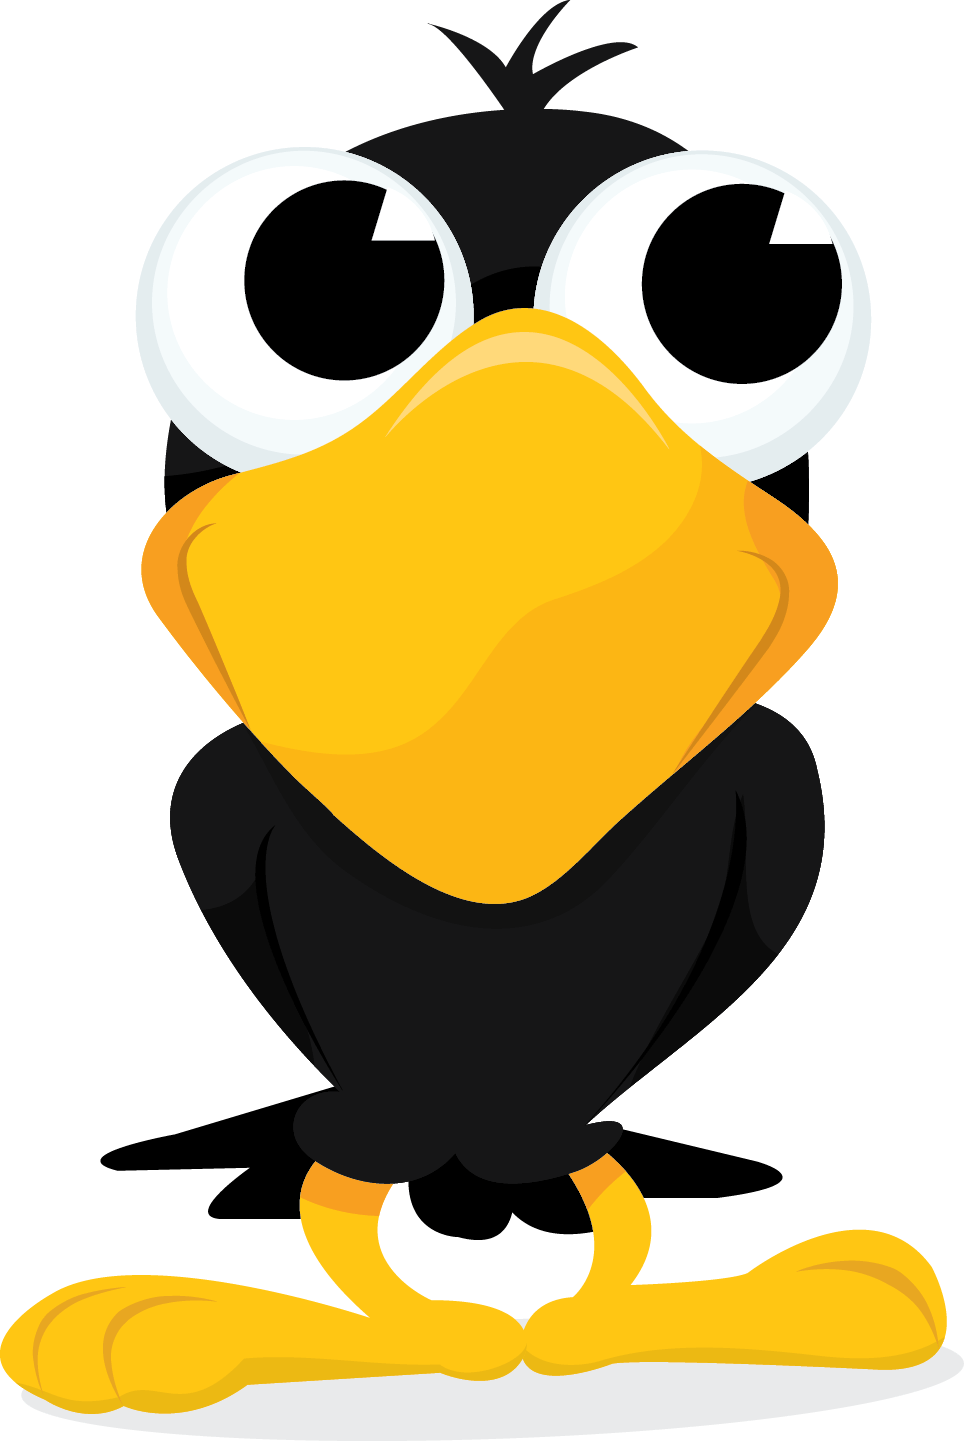 Crow clipart pitcher. S world of anime